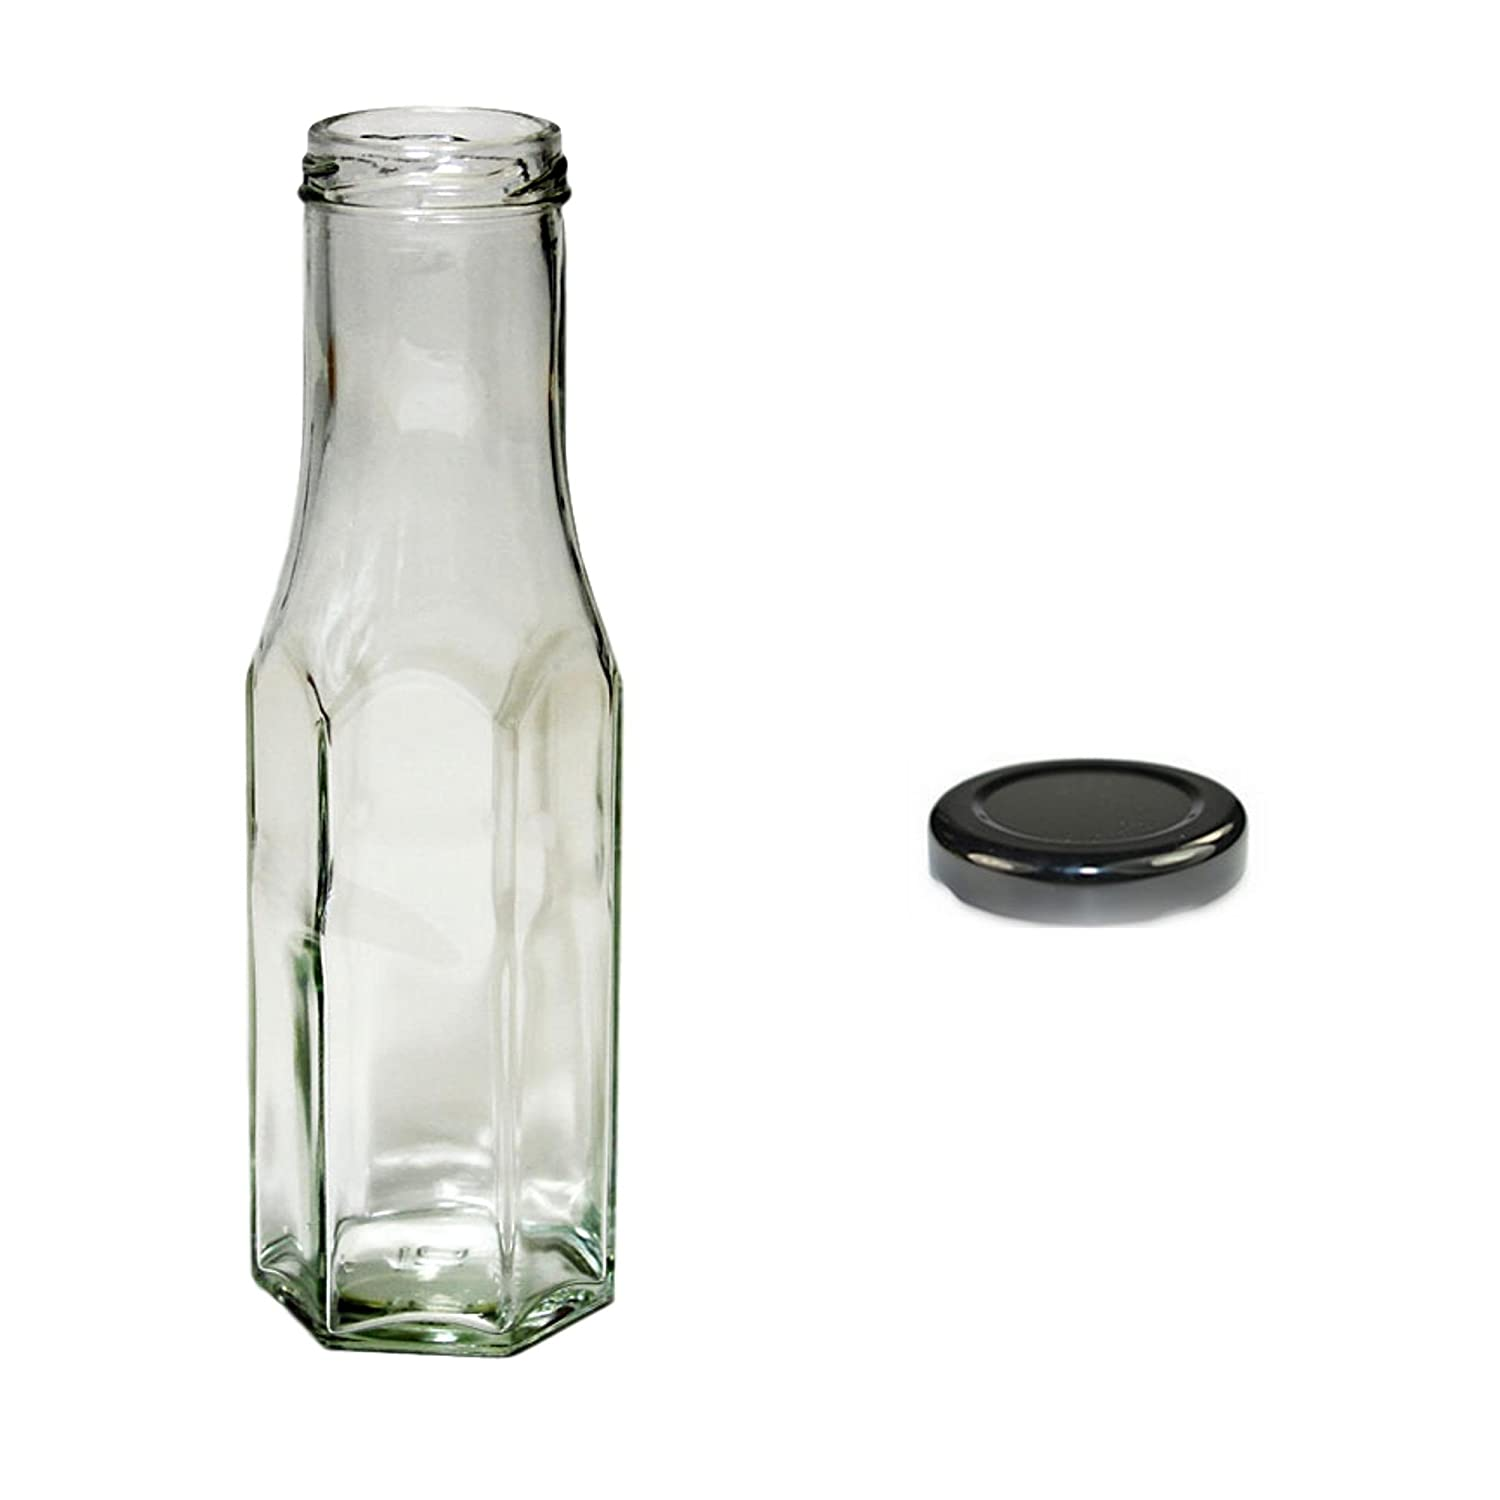 5x 250ml Clear Hexagonal Sauce Bottles with Black Screw Cap West5Products